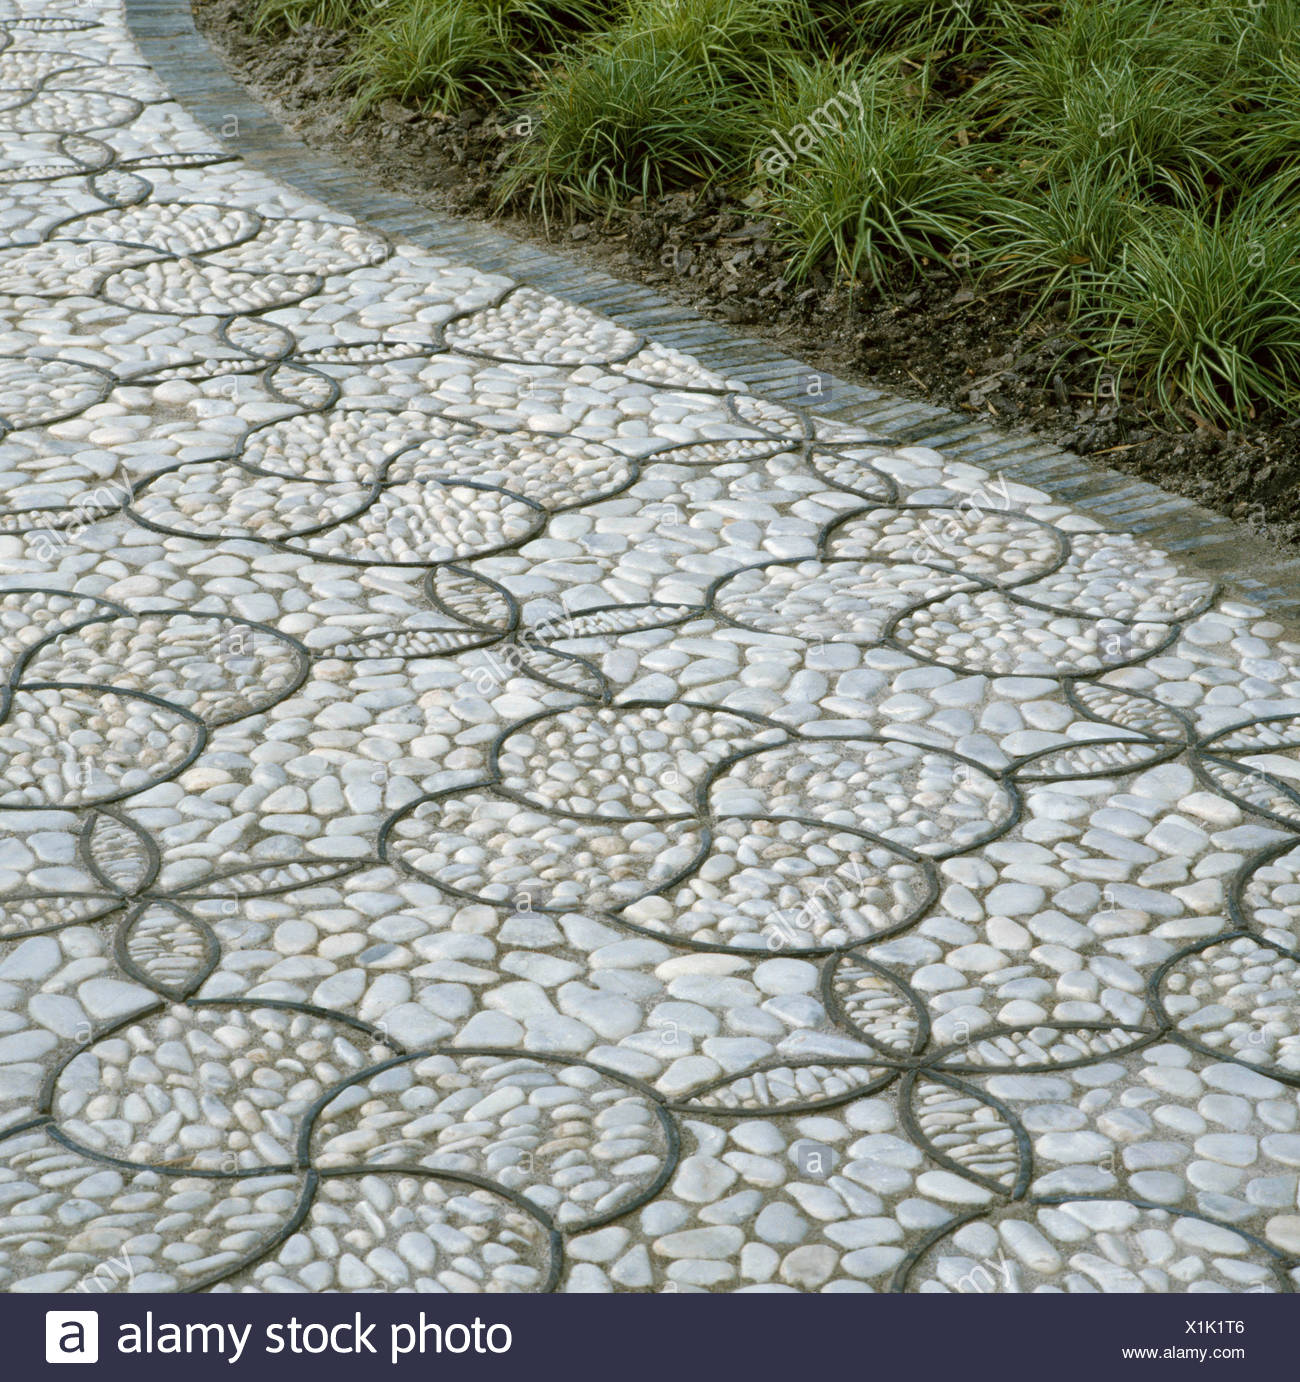 Paths and Paving - Chinese Style   PAP052282 - Stock Image